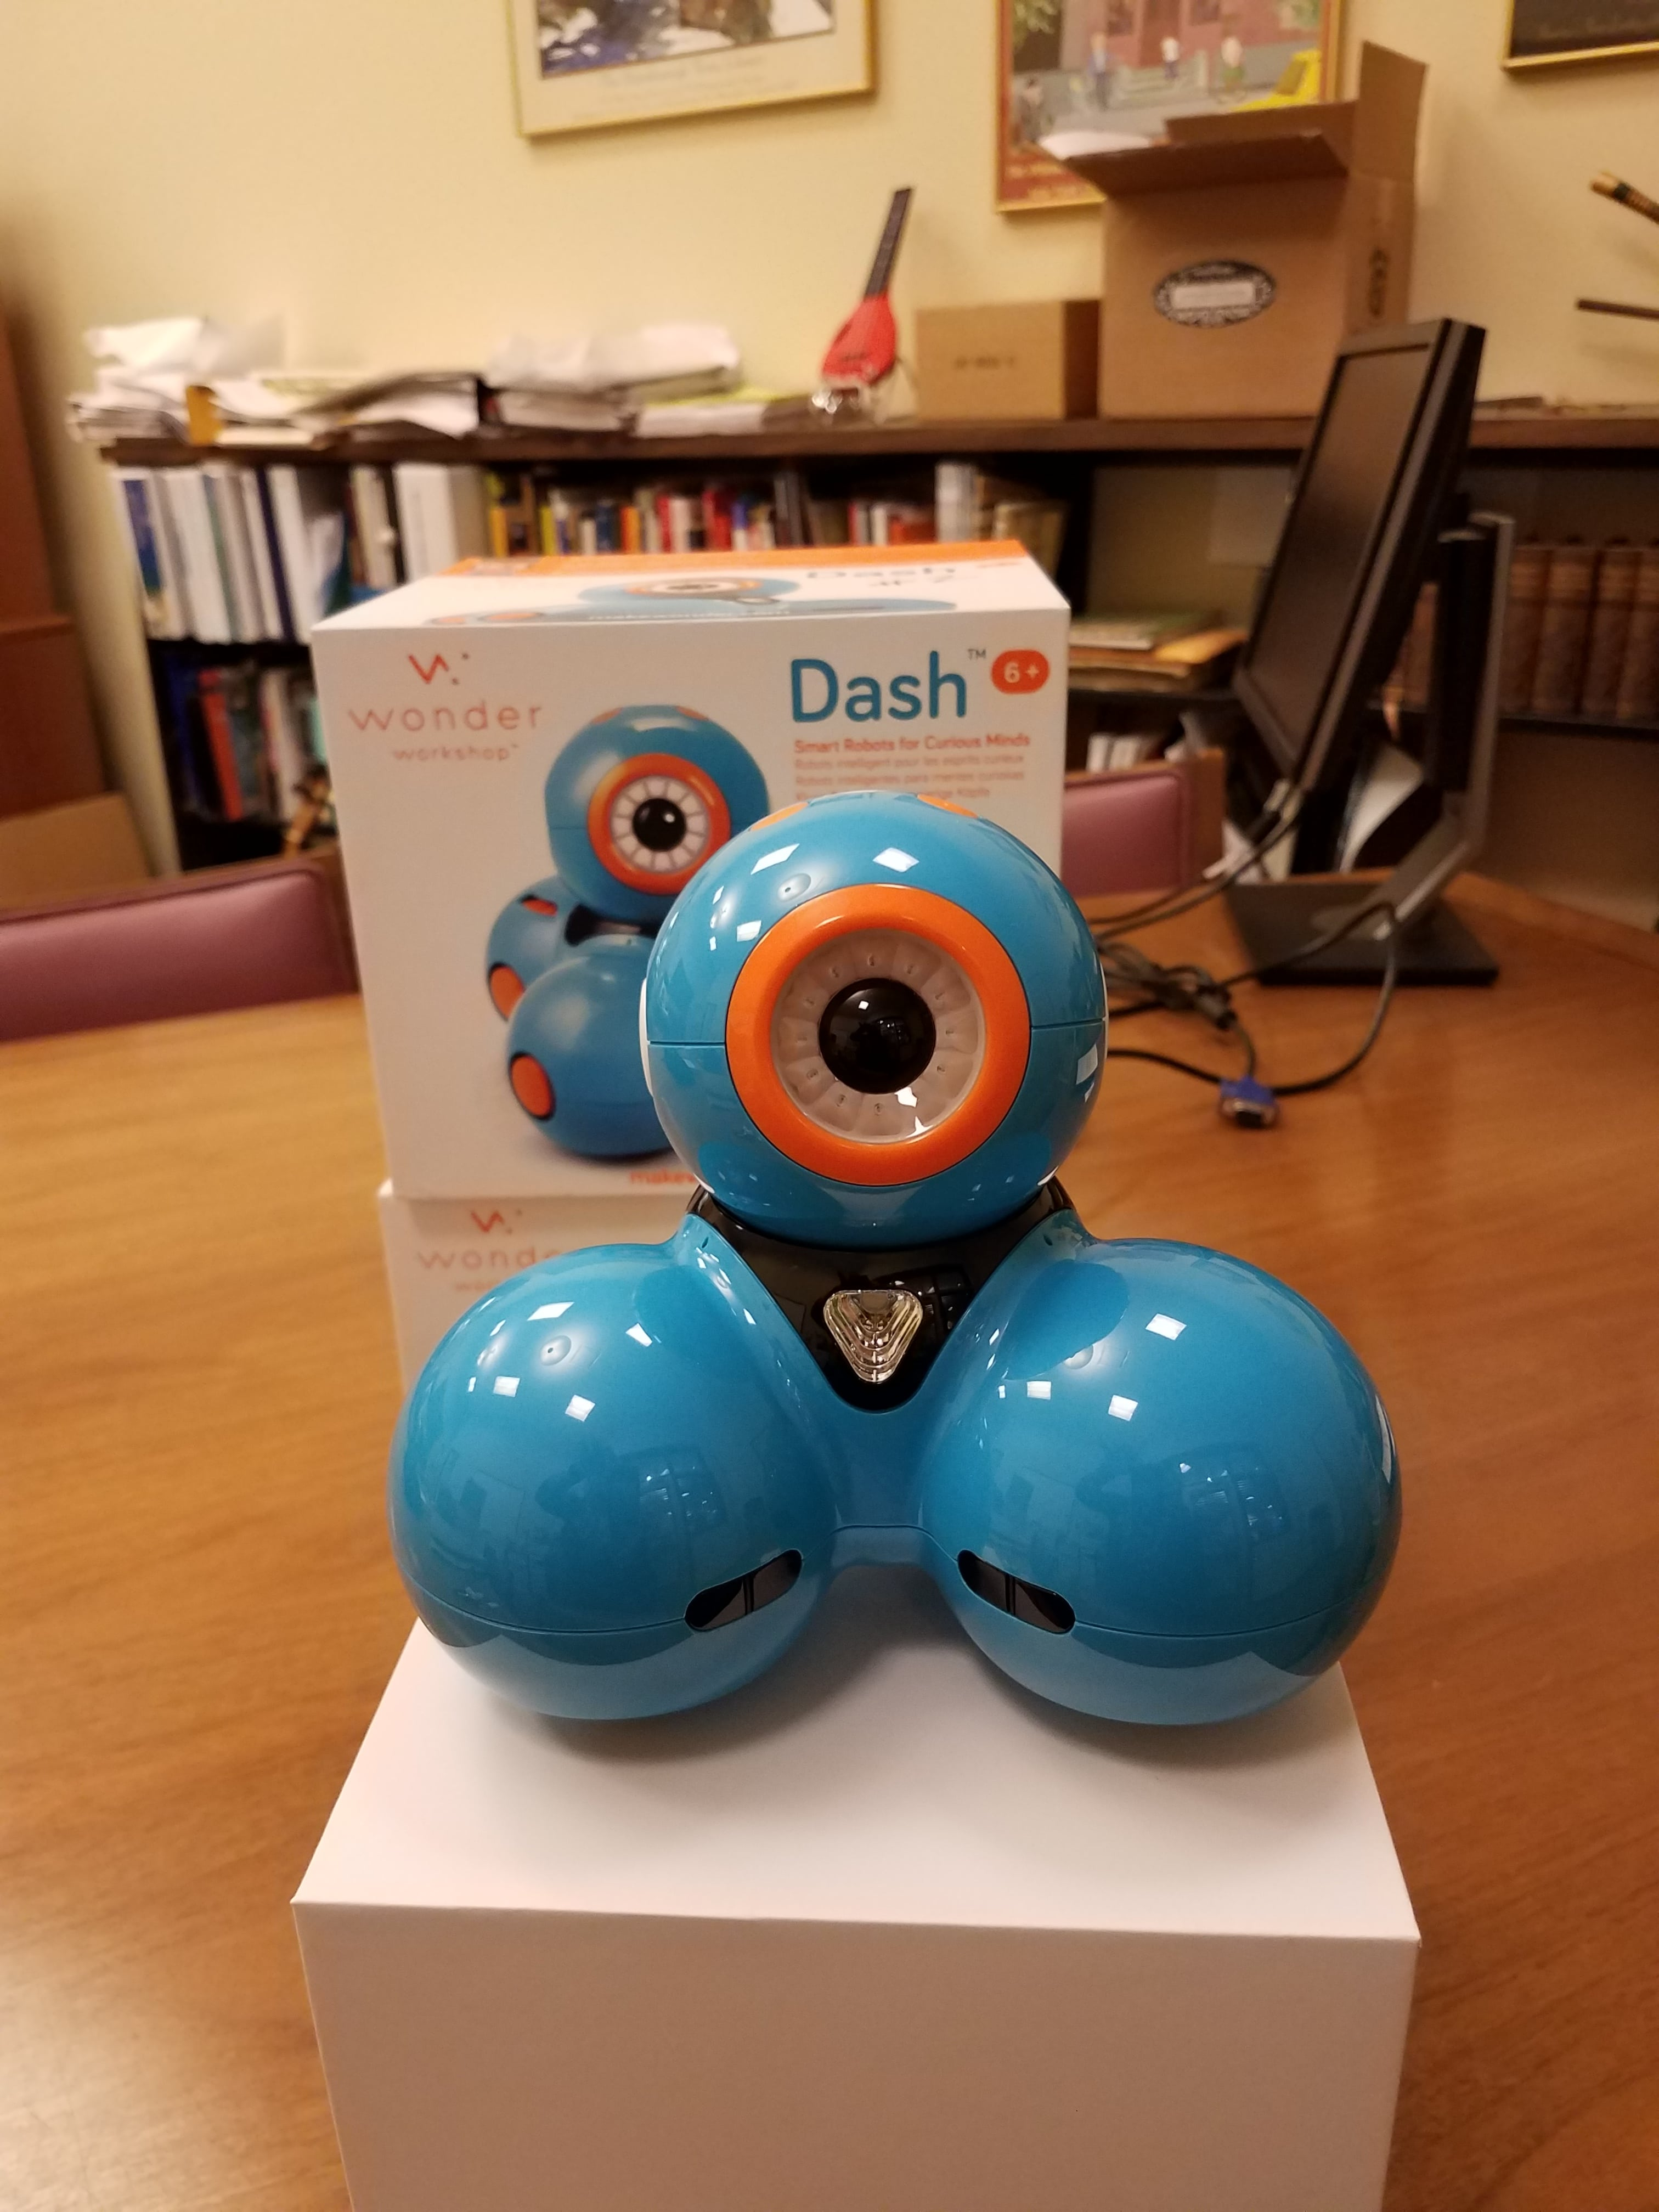 Image of a Dash Robot sitting on a table